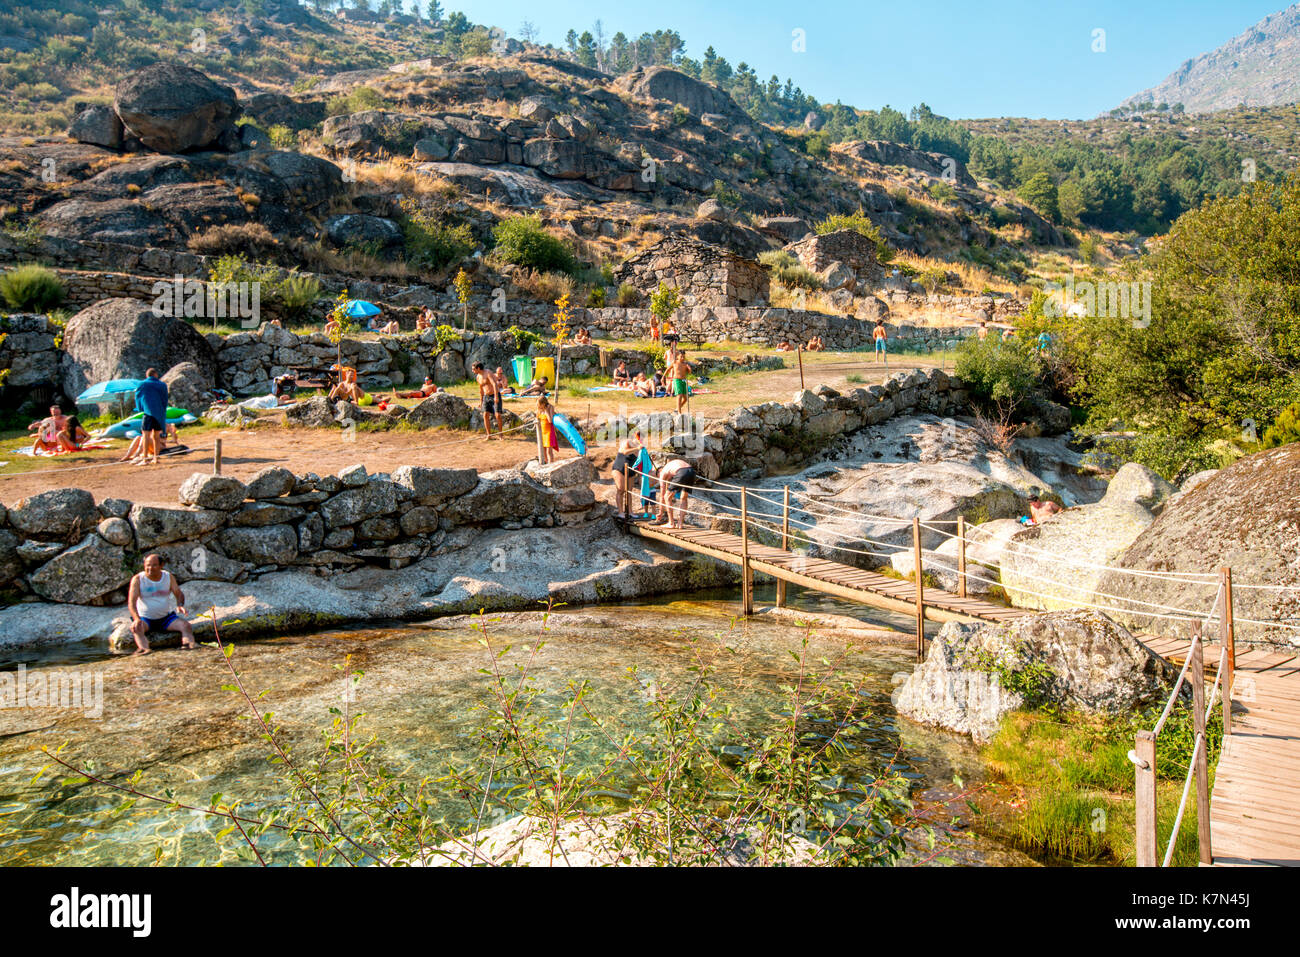 People enjoy the day in the river beach - Stock Image